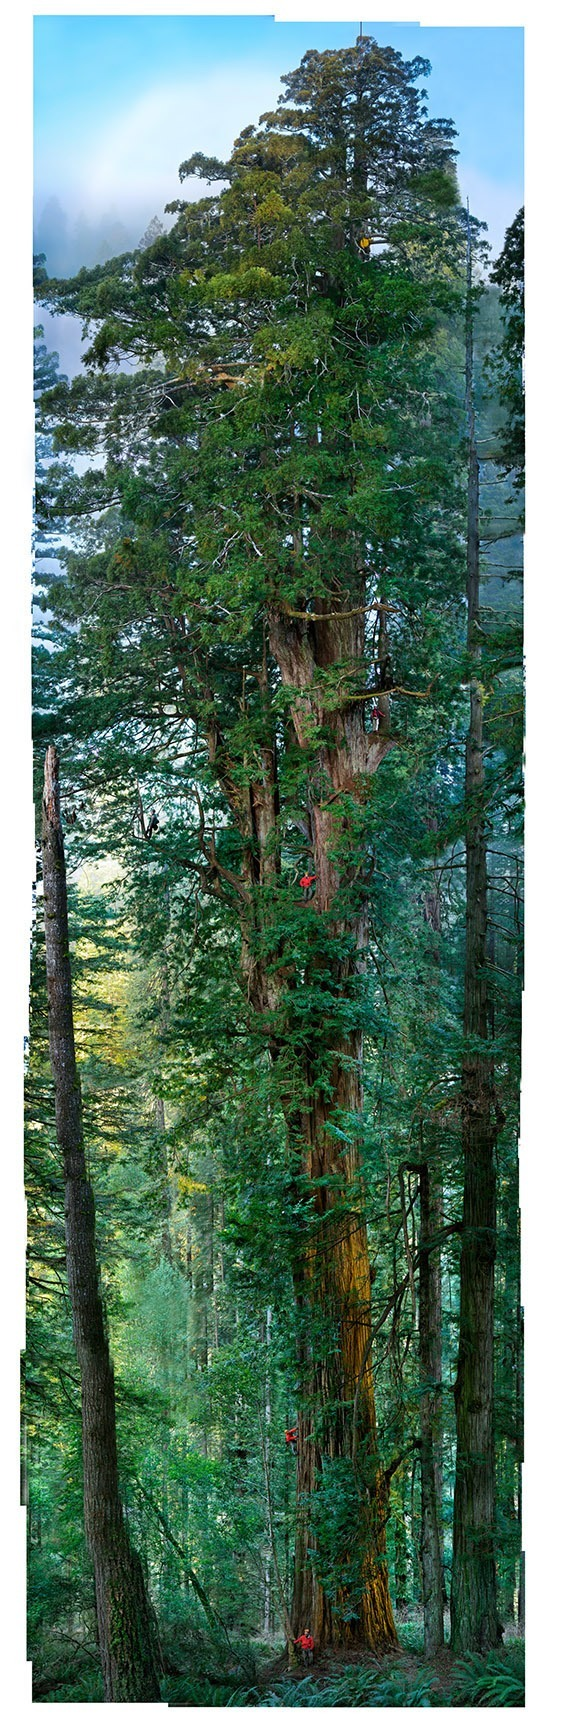 This 300‐foot redwood is roughly 1,500 years old and has the most complex crown structure scientists have ever mapped. A team of seven photographers collaborated with Nichols over 19 days; in one magic hour, they created this composite image of 84 individual images, which took 120 hours to stitch together.